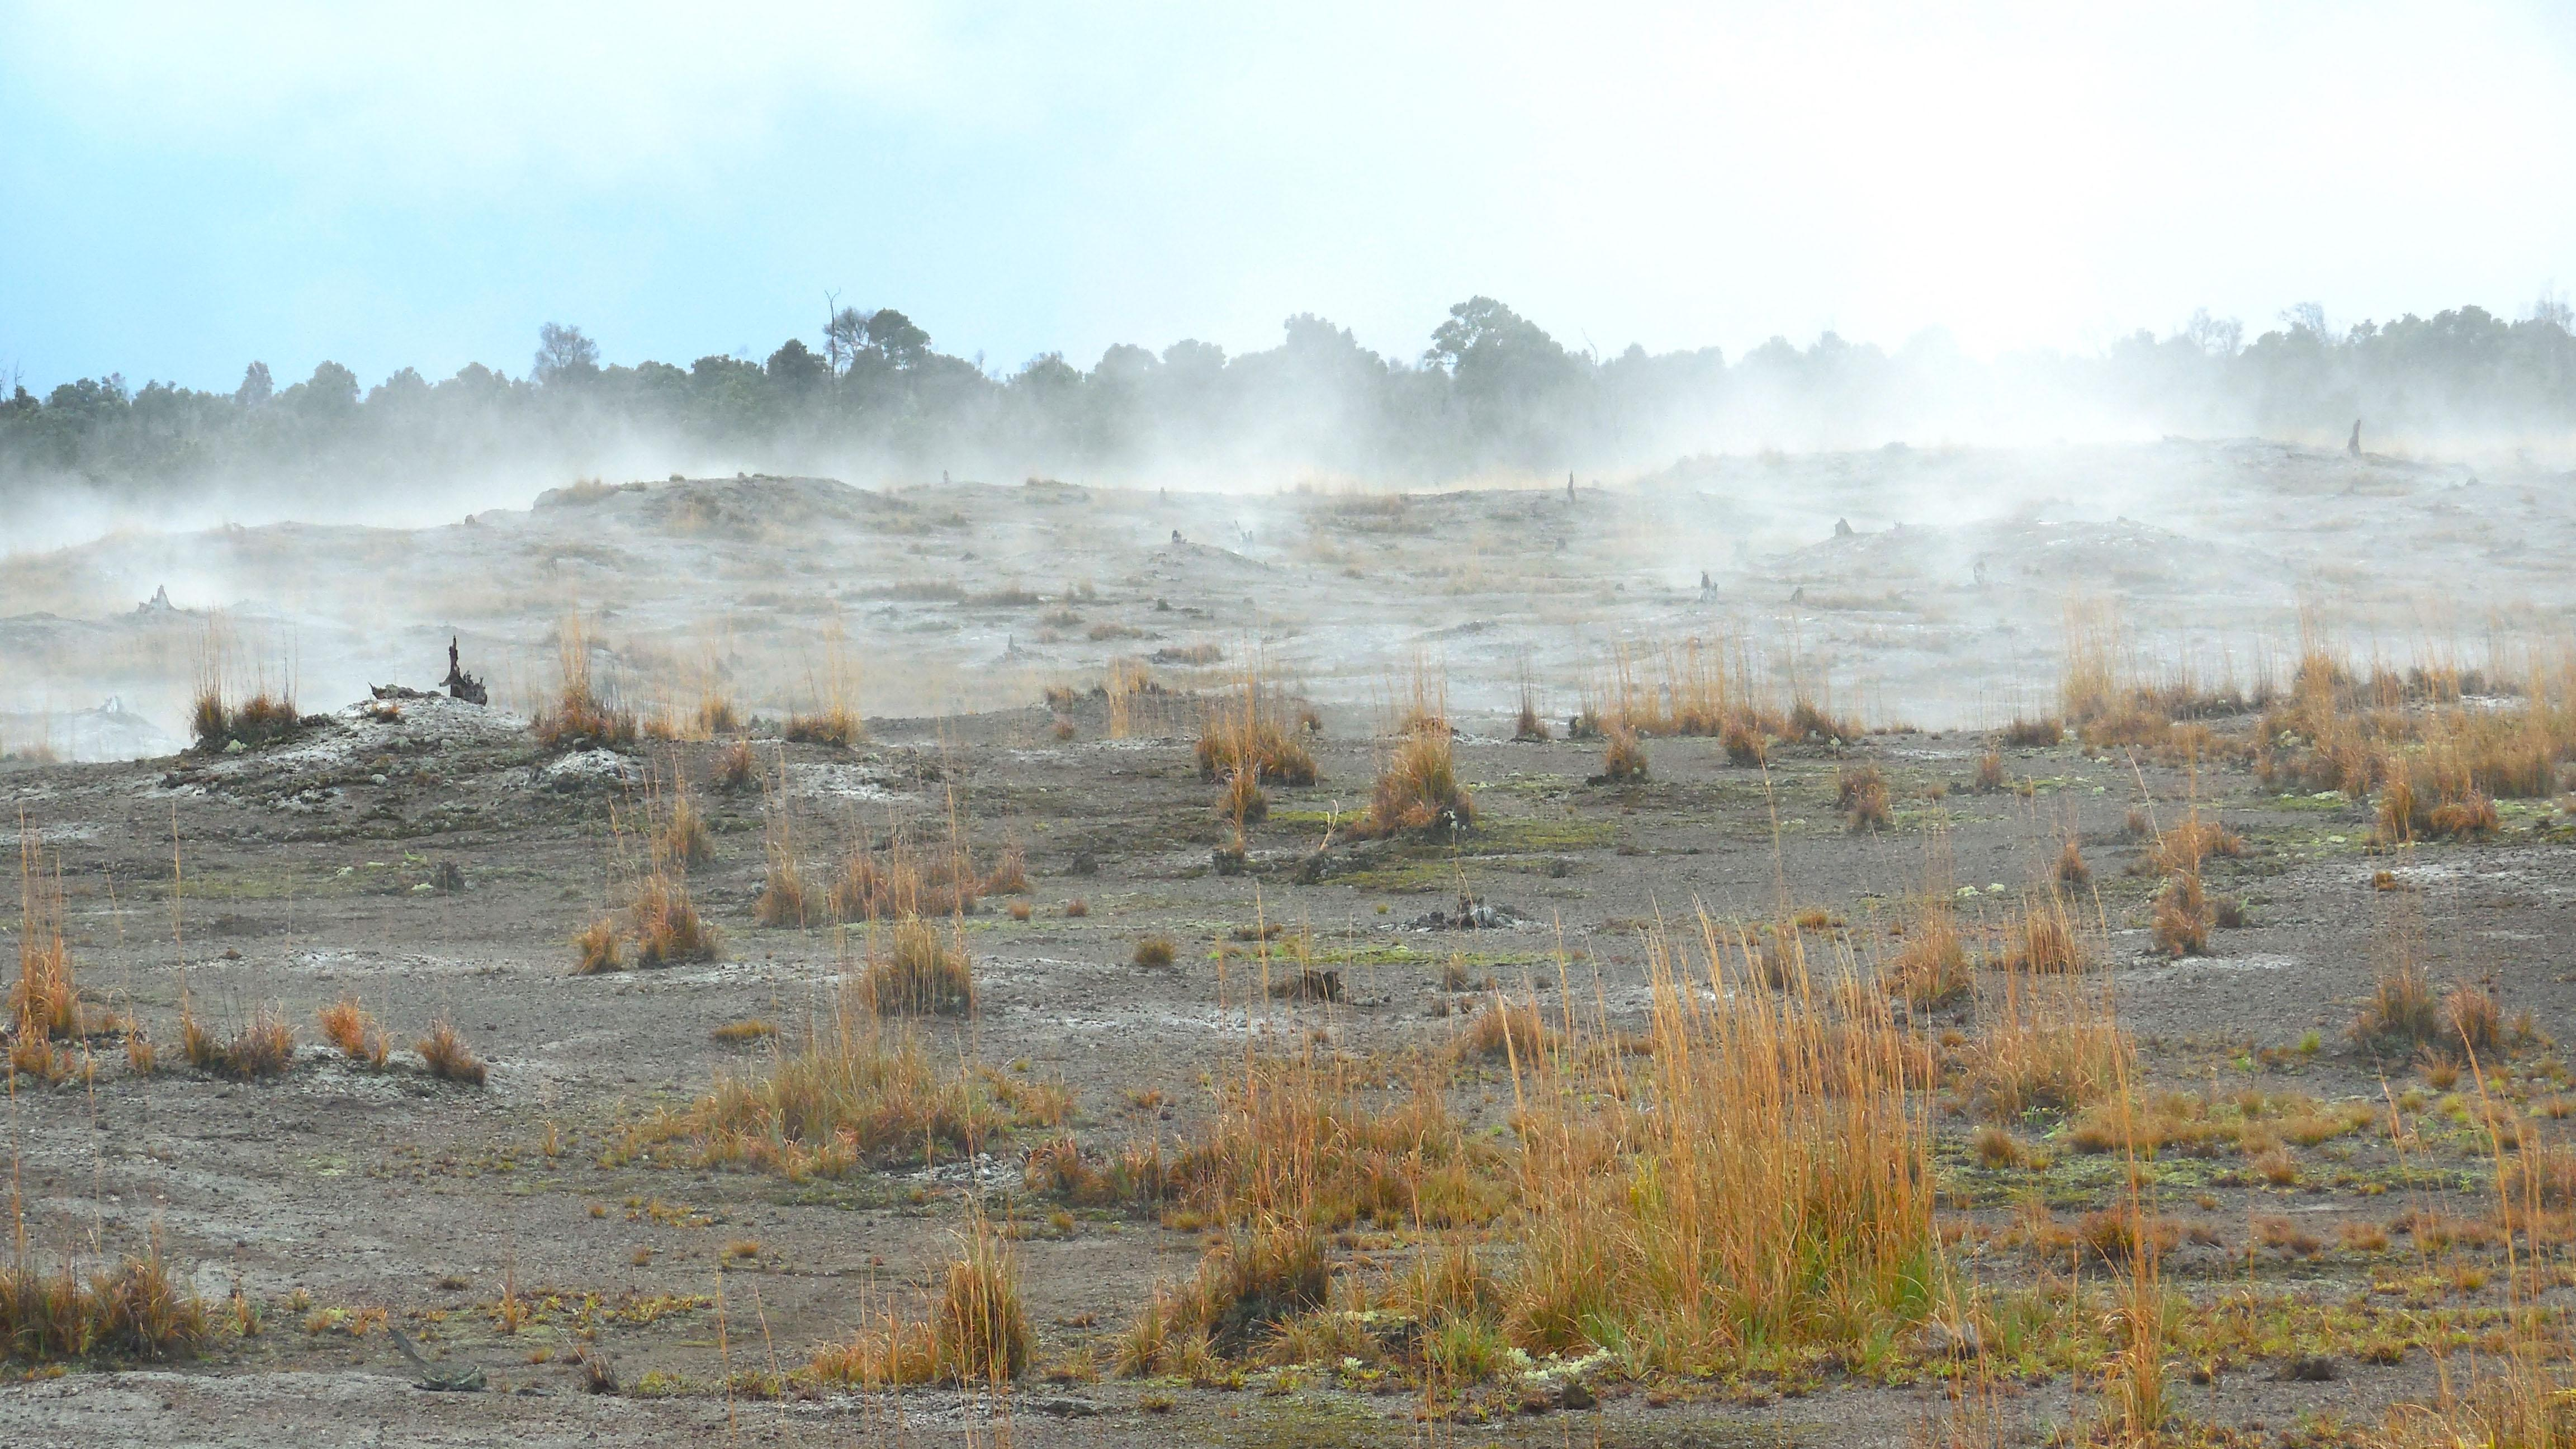 The Earth Microbiome Project aims to catalog all of the world's microbial communities, including those found in the Puhimau Thermal Area of Hawai'i Volcanoes National Park. (G.M. King)